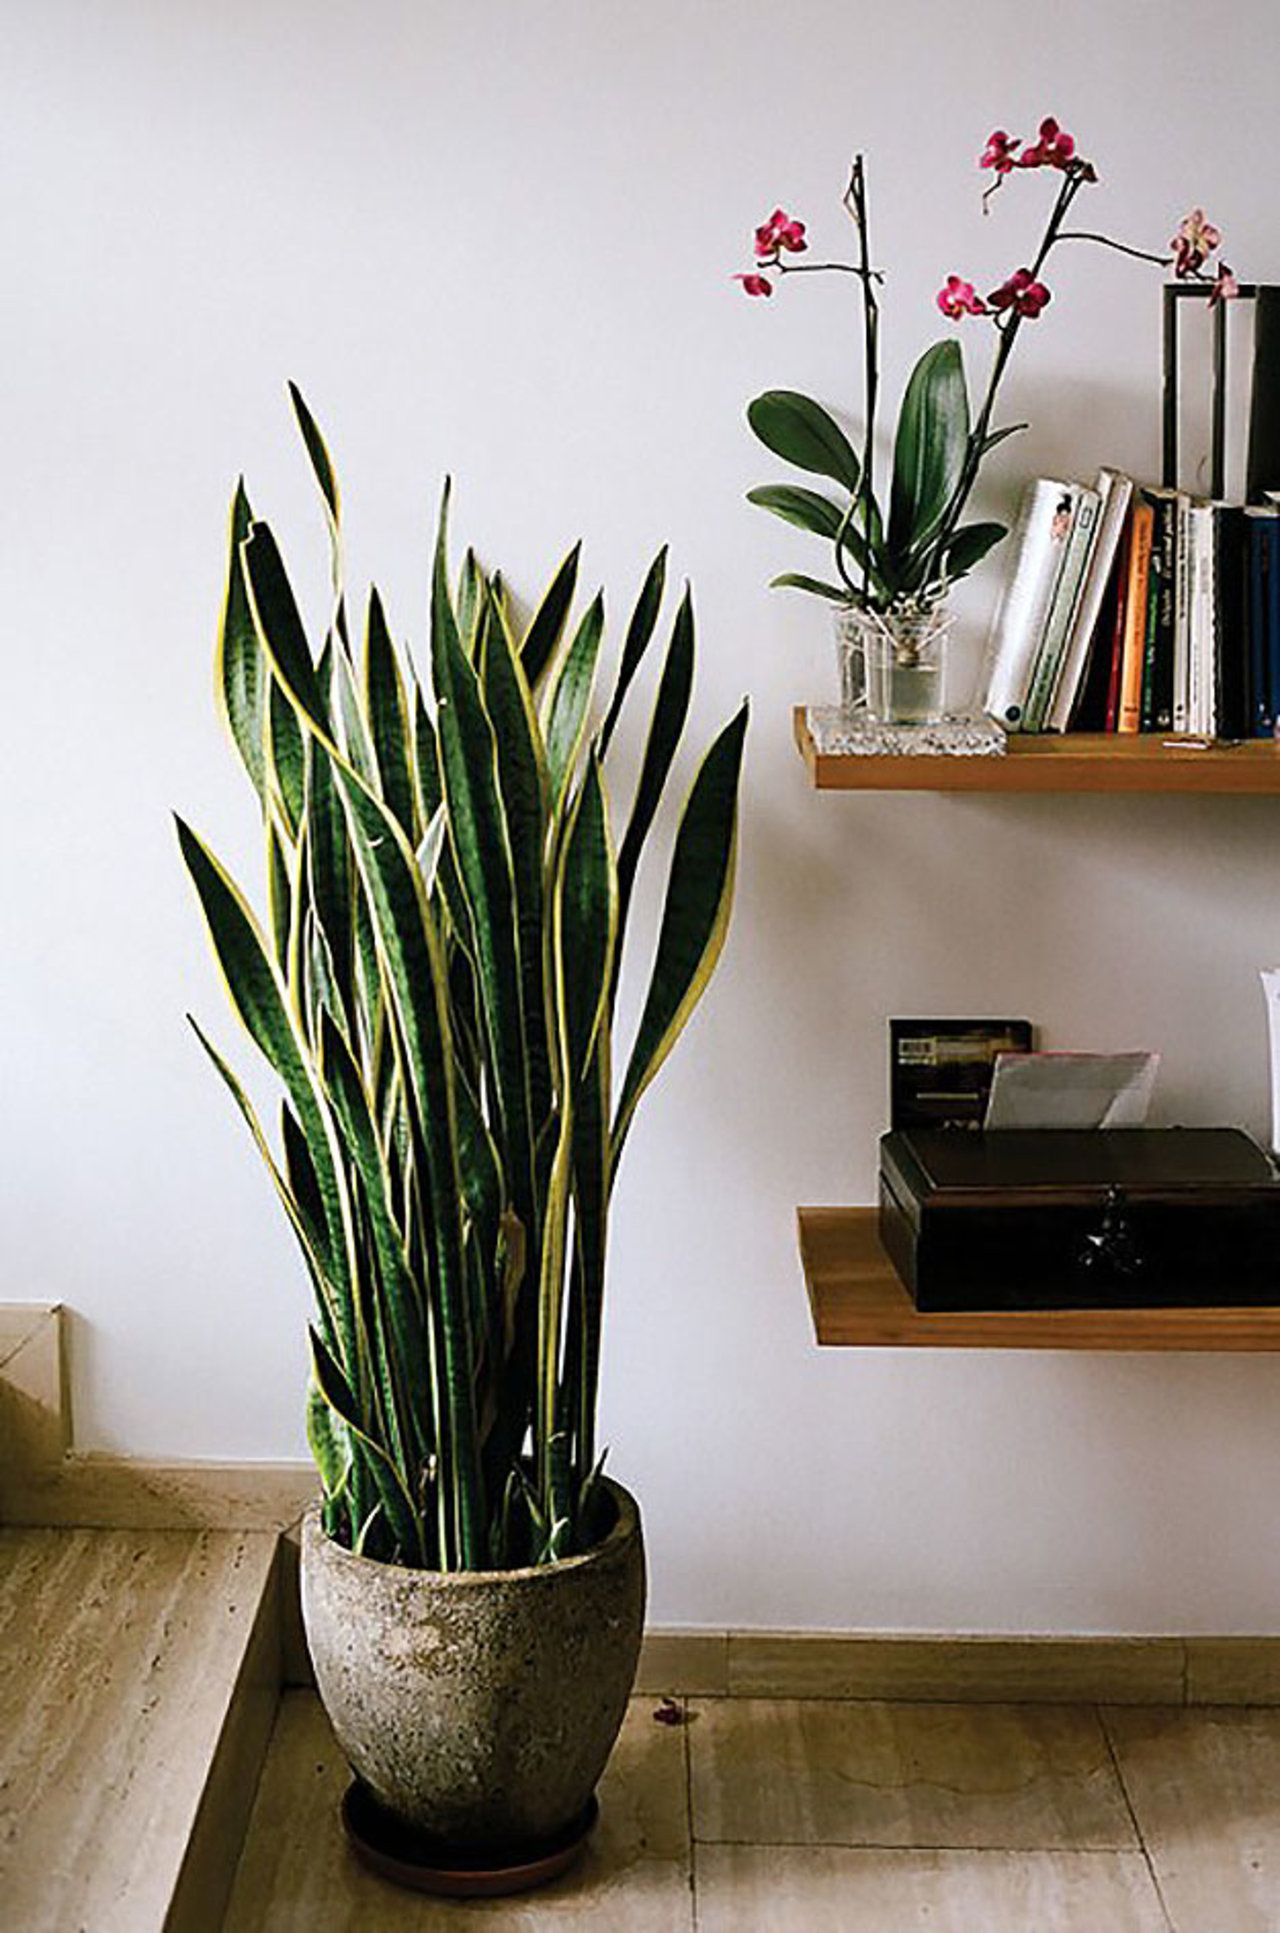 6 houseplants that will survive your busy schedule